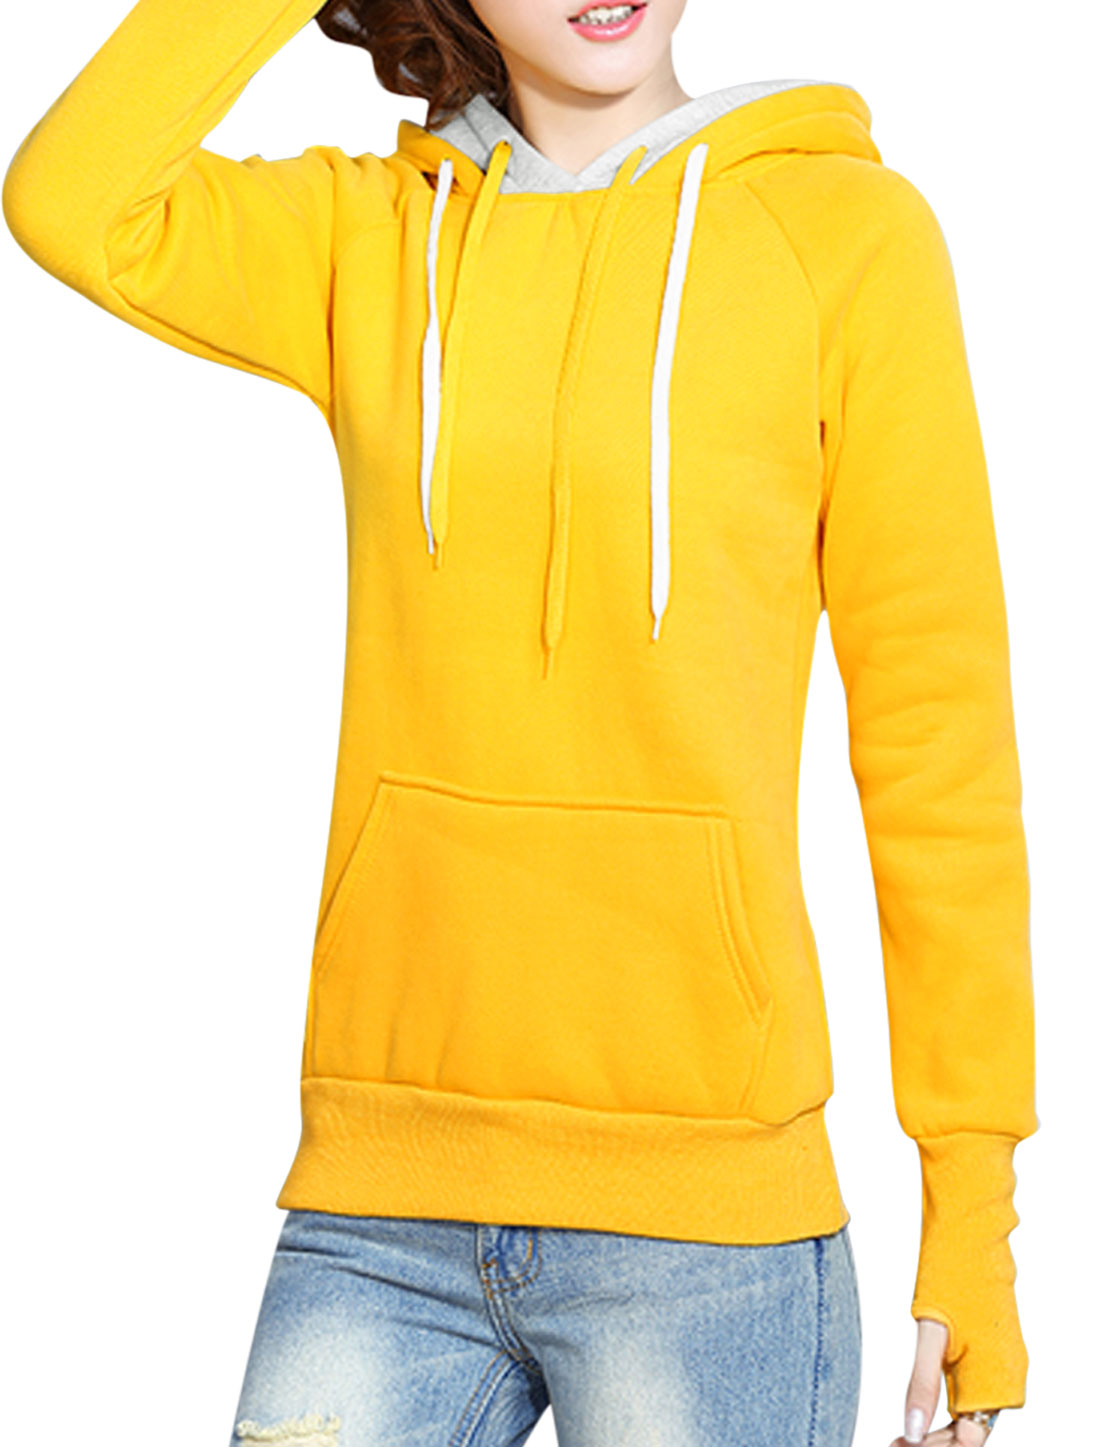 Ladies Kangaroo Pocket Double Layer Hooded Sweatshirt Yellow XS